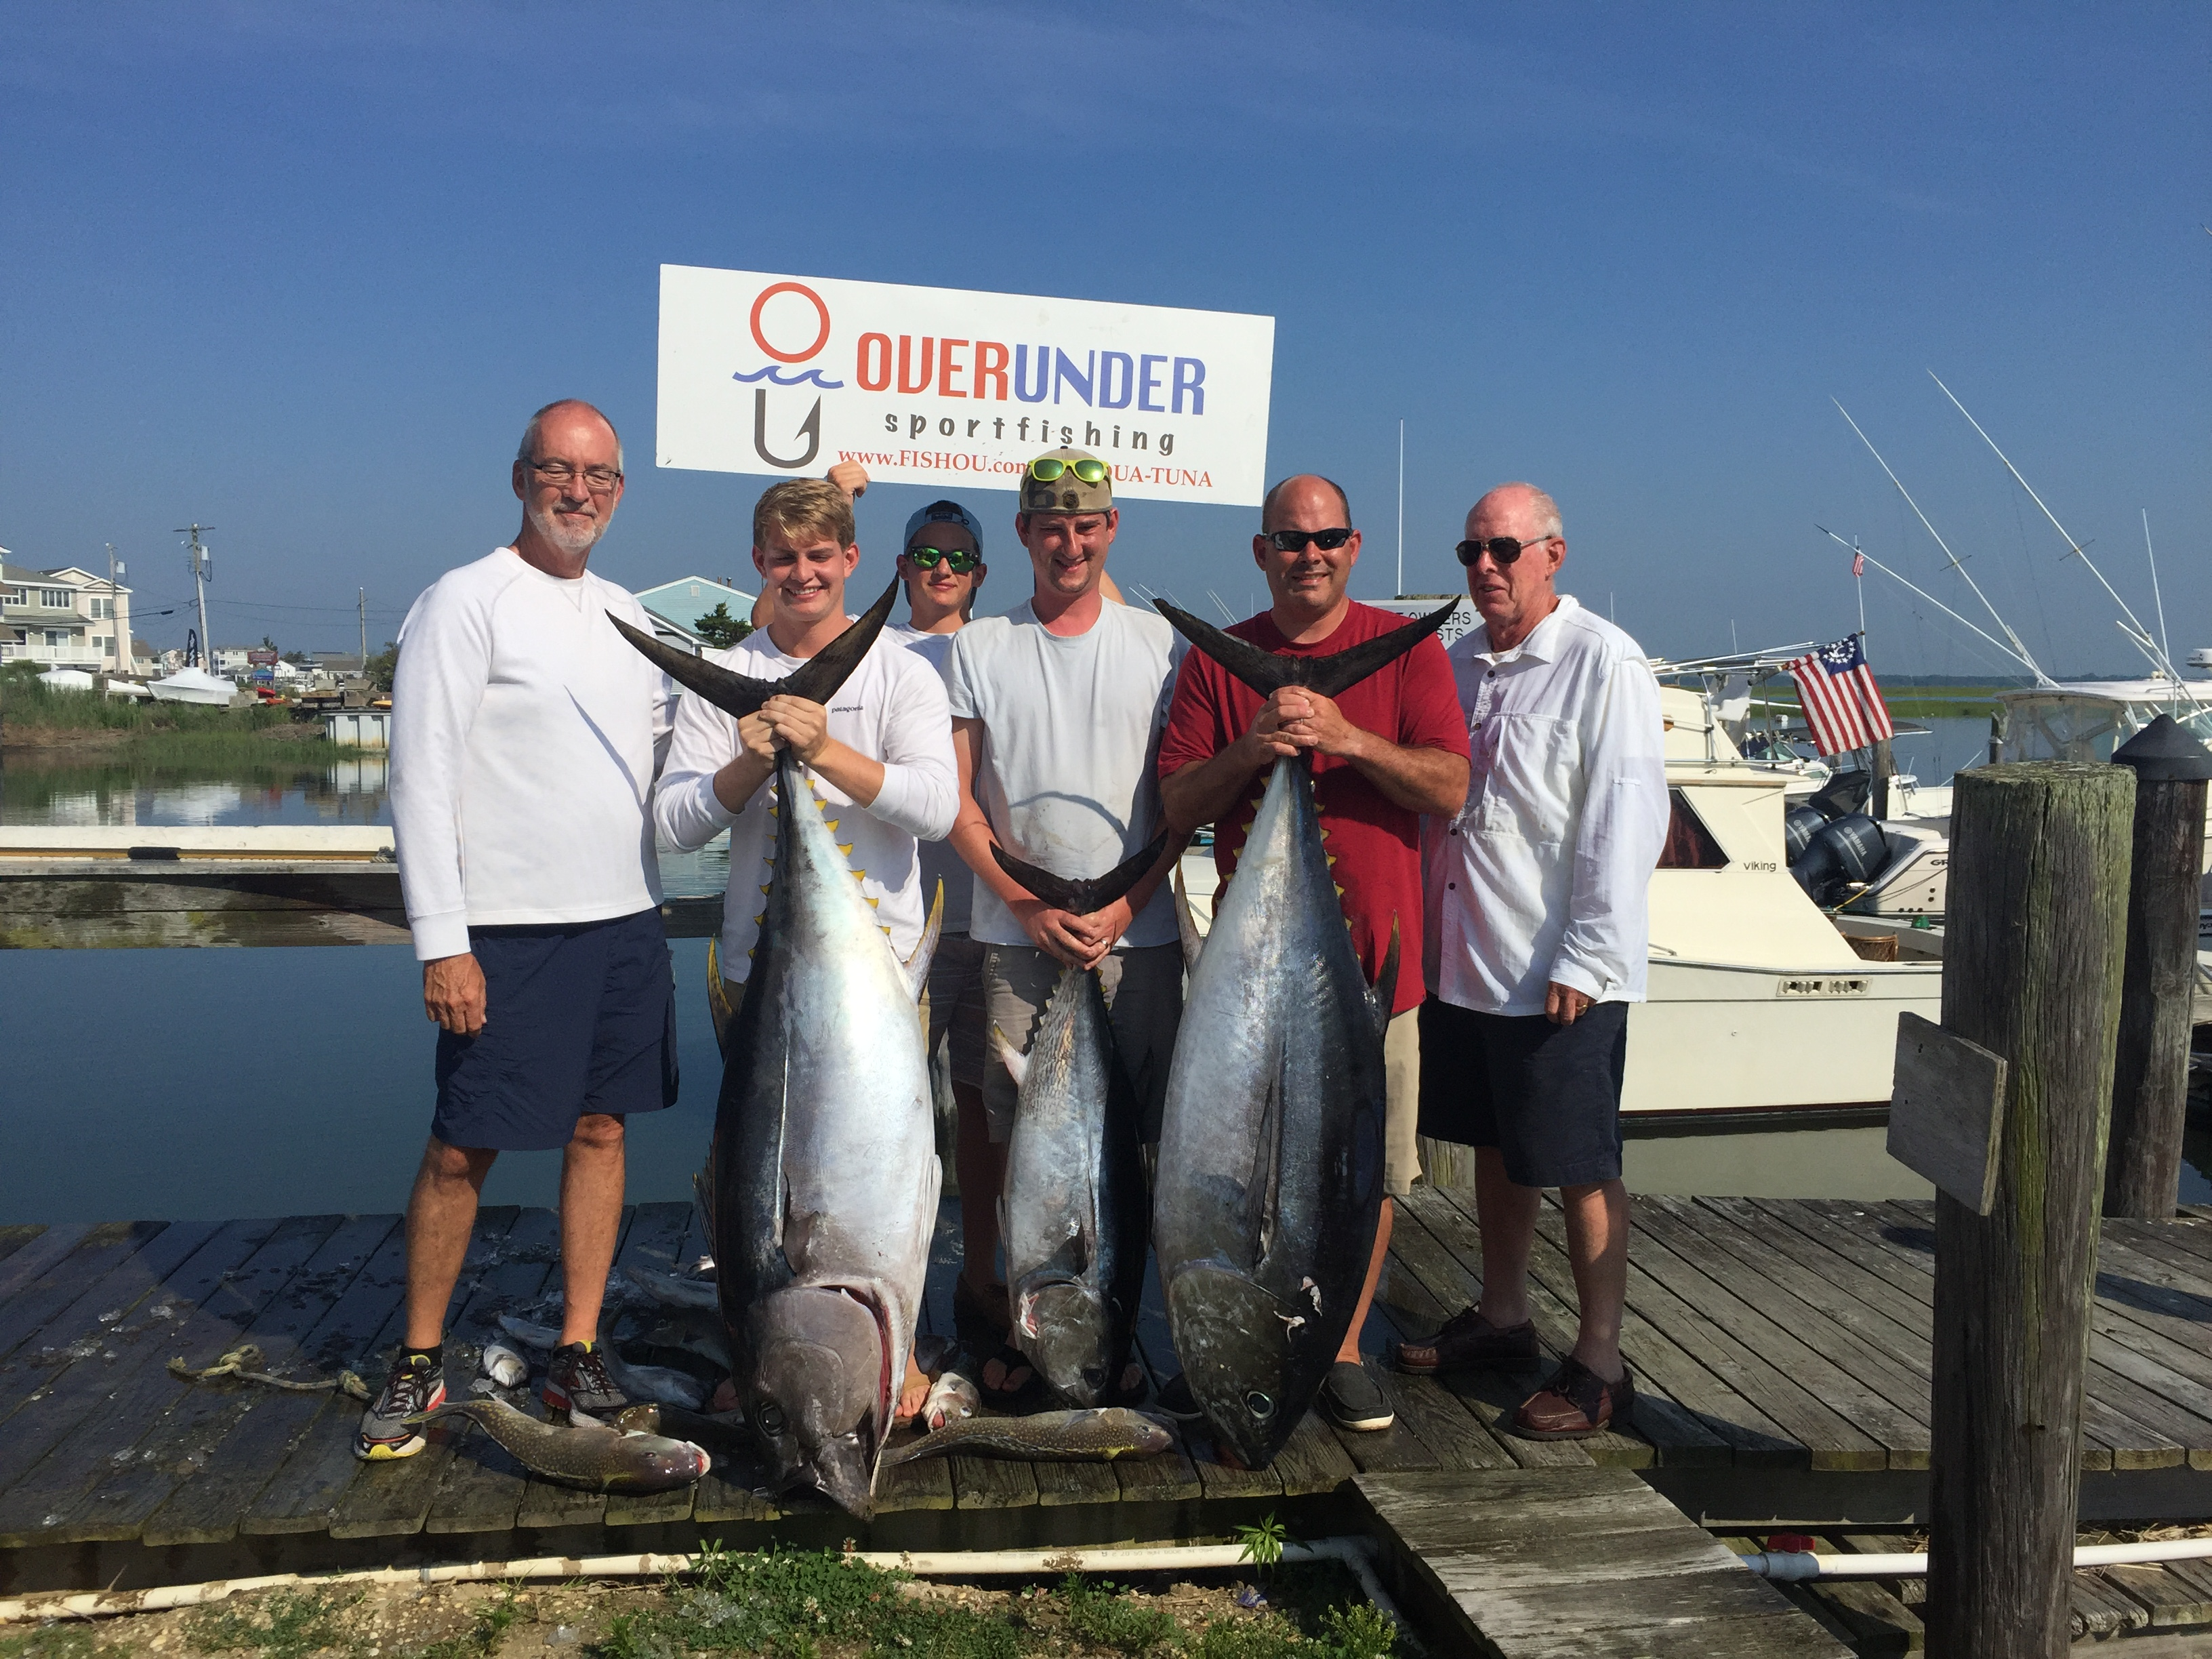 Nj salt fish 2016 07 09 over under charters cape may for Fishing report nj